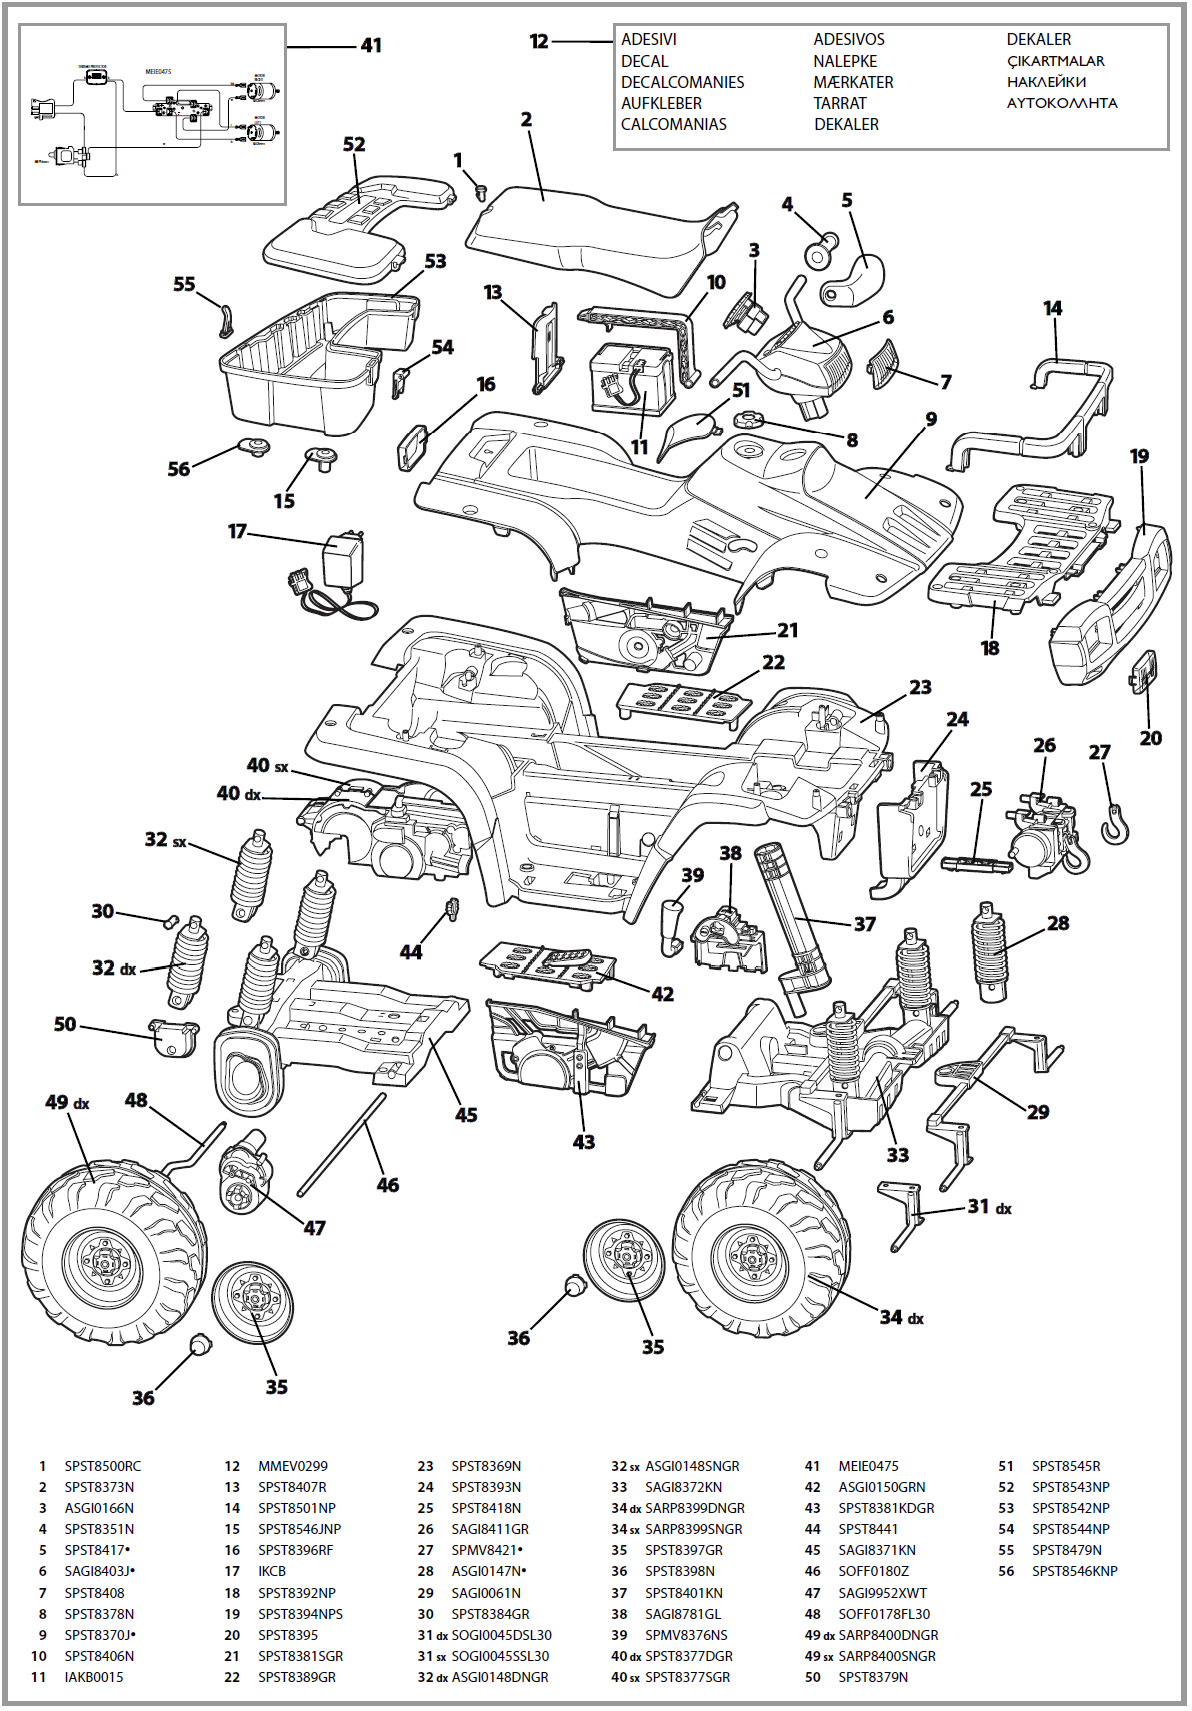 Polaris Ranger 6x6 Wiring Diagram Lexus Rx330 Wiring Harness For Wiring Diagram Schematics